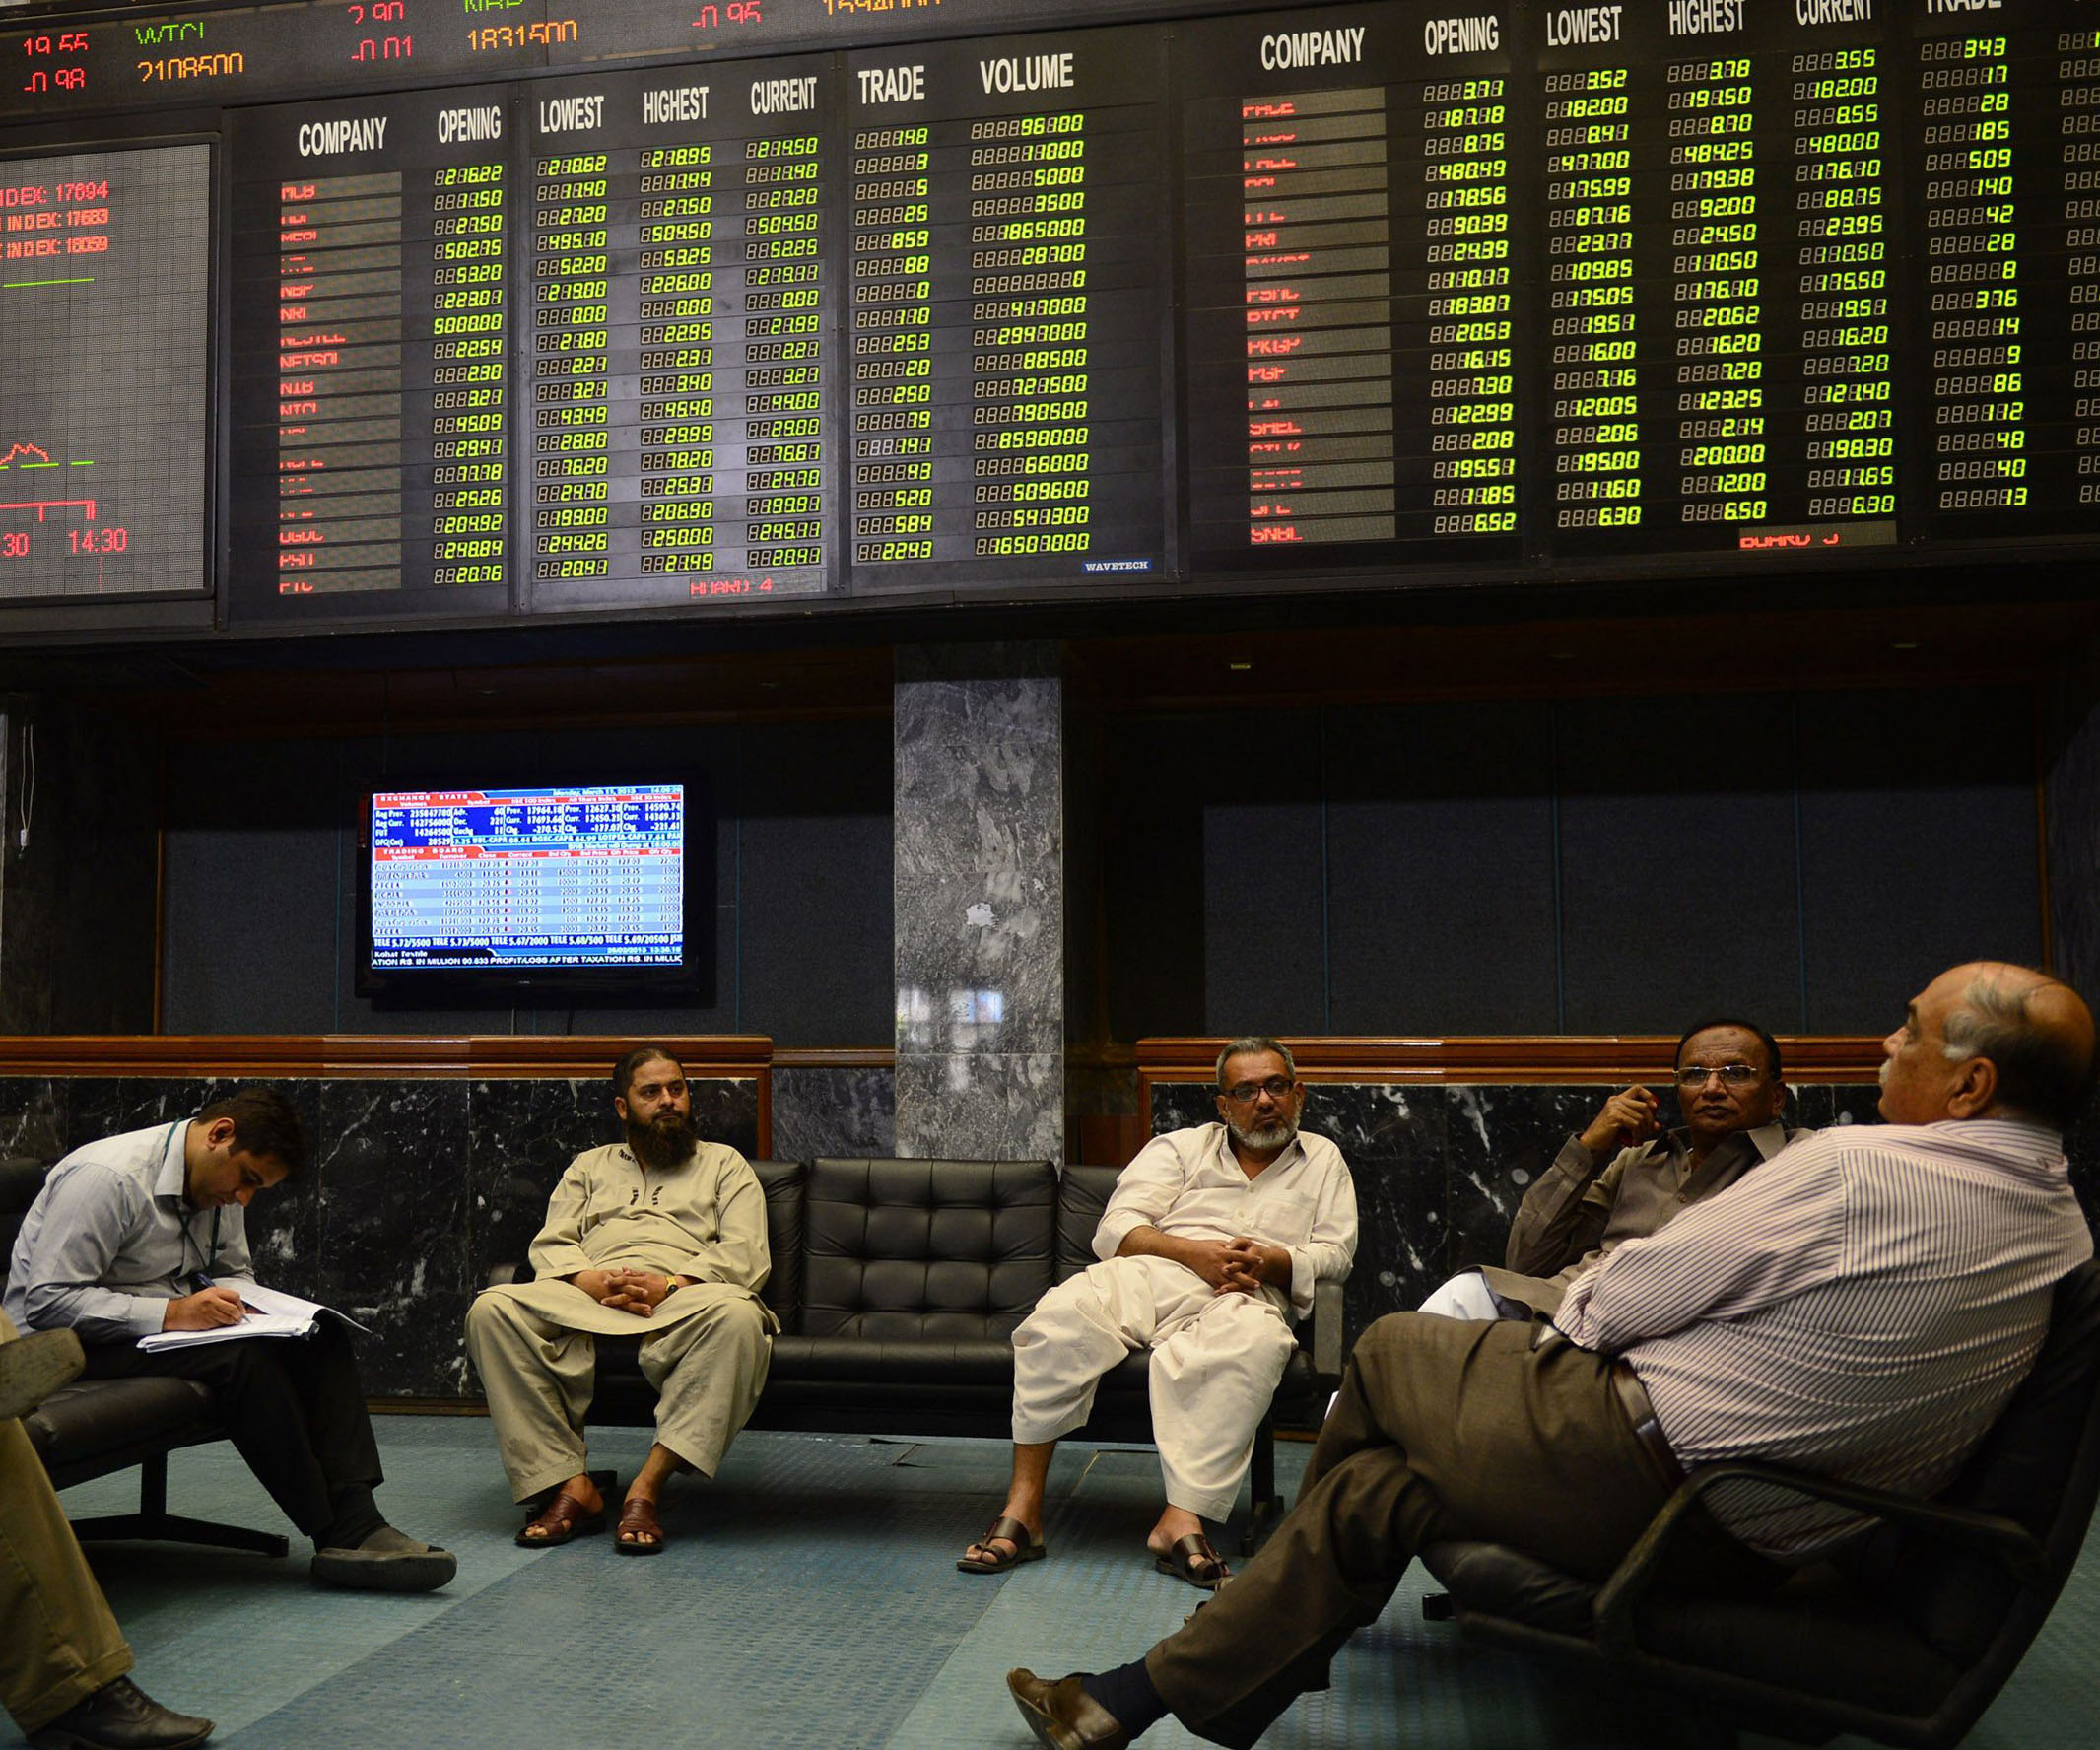 stock-market-kse-100-index-photo-afp-2-2-2-3-2-4-2-2-3-4-2-3-2-2-2-2